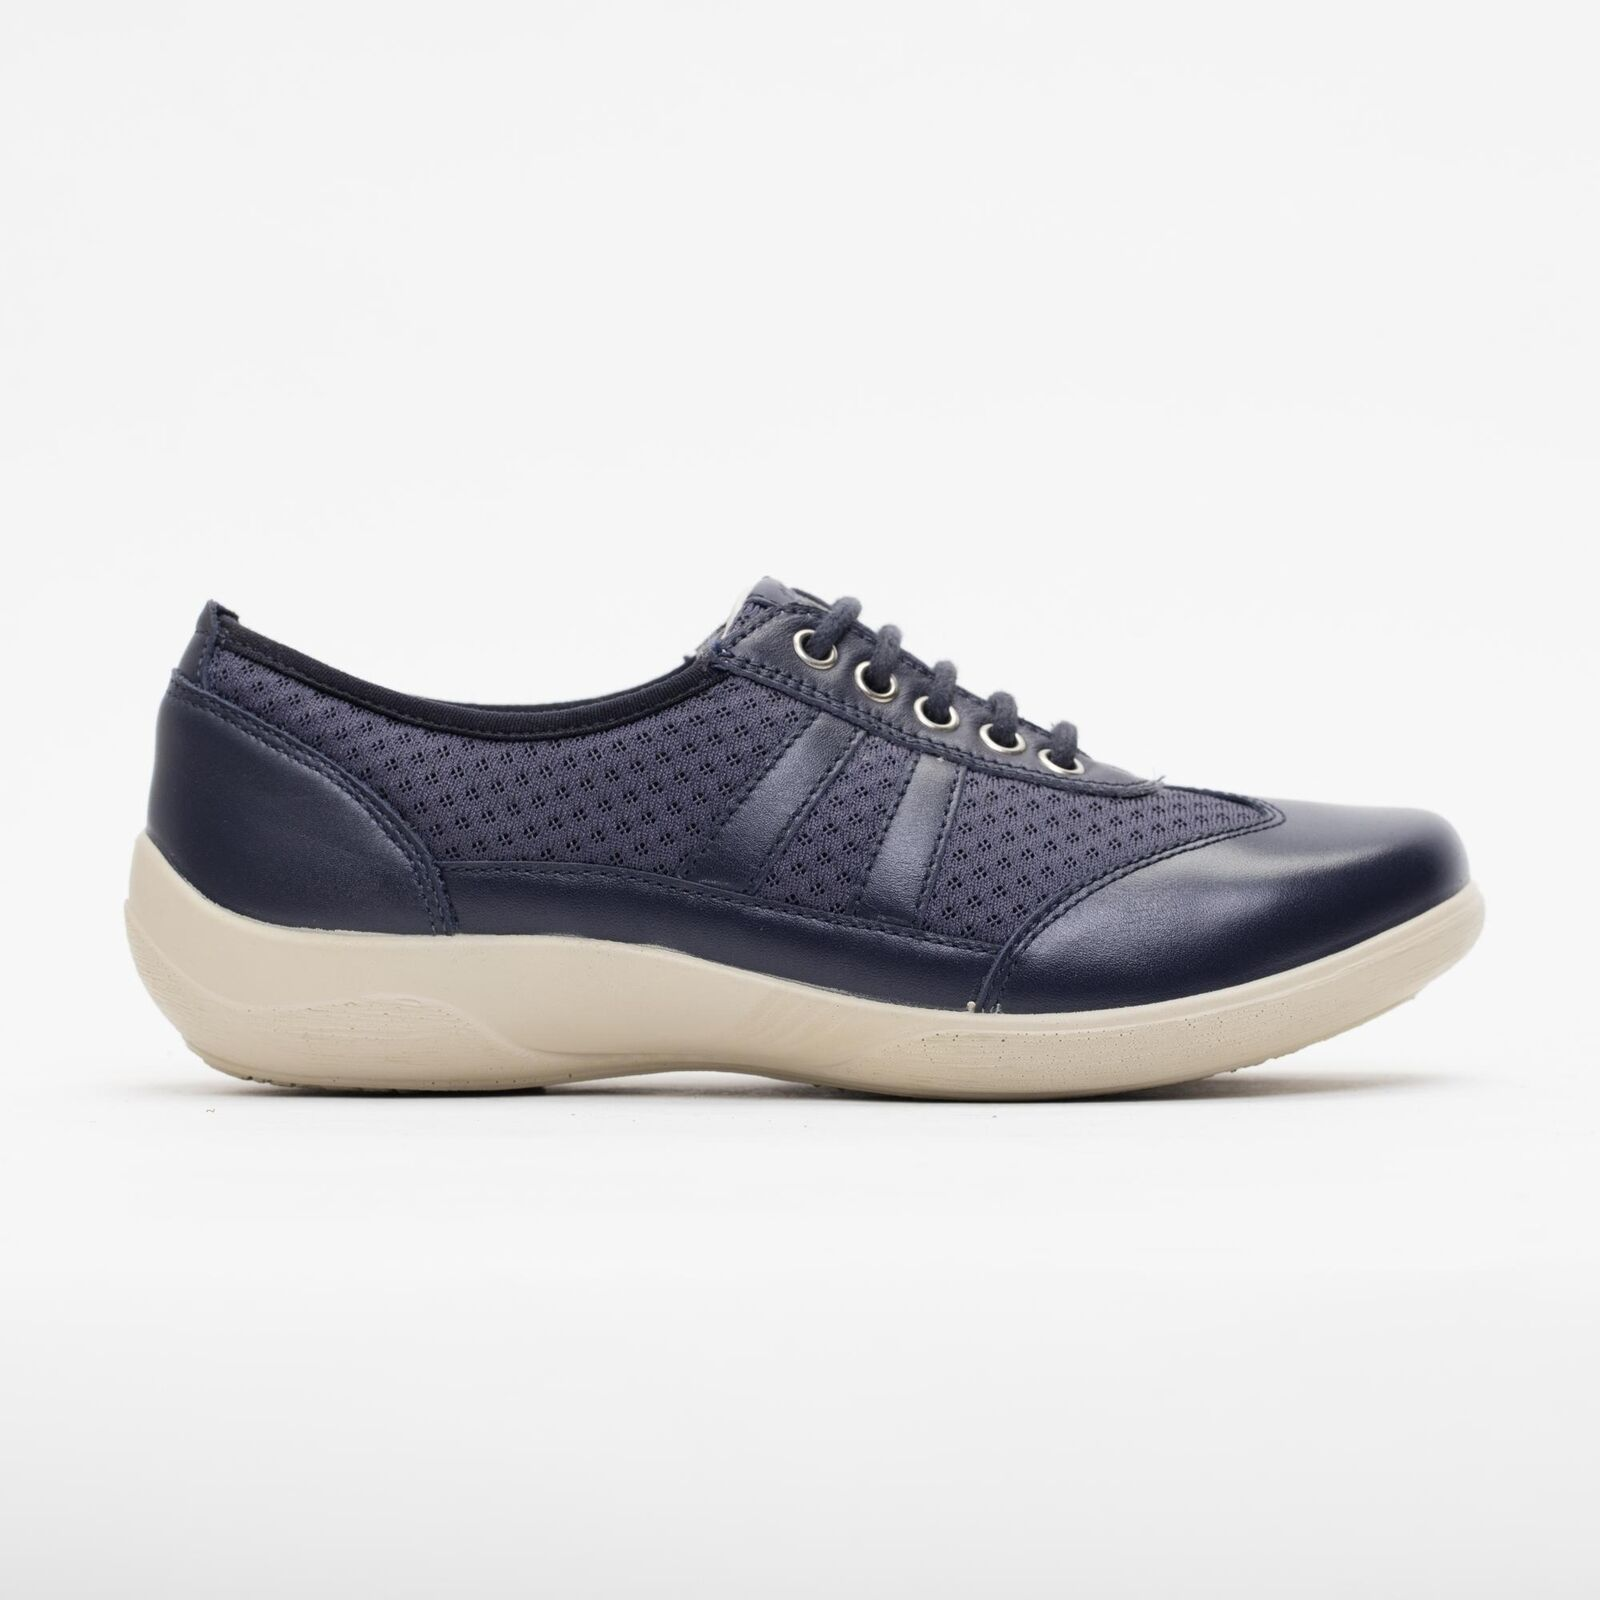 Padders JULIE Ladies Womens Leather Extra Wide Plus Casual Casual Casual Trainer shoes Navy c16db7